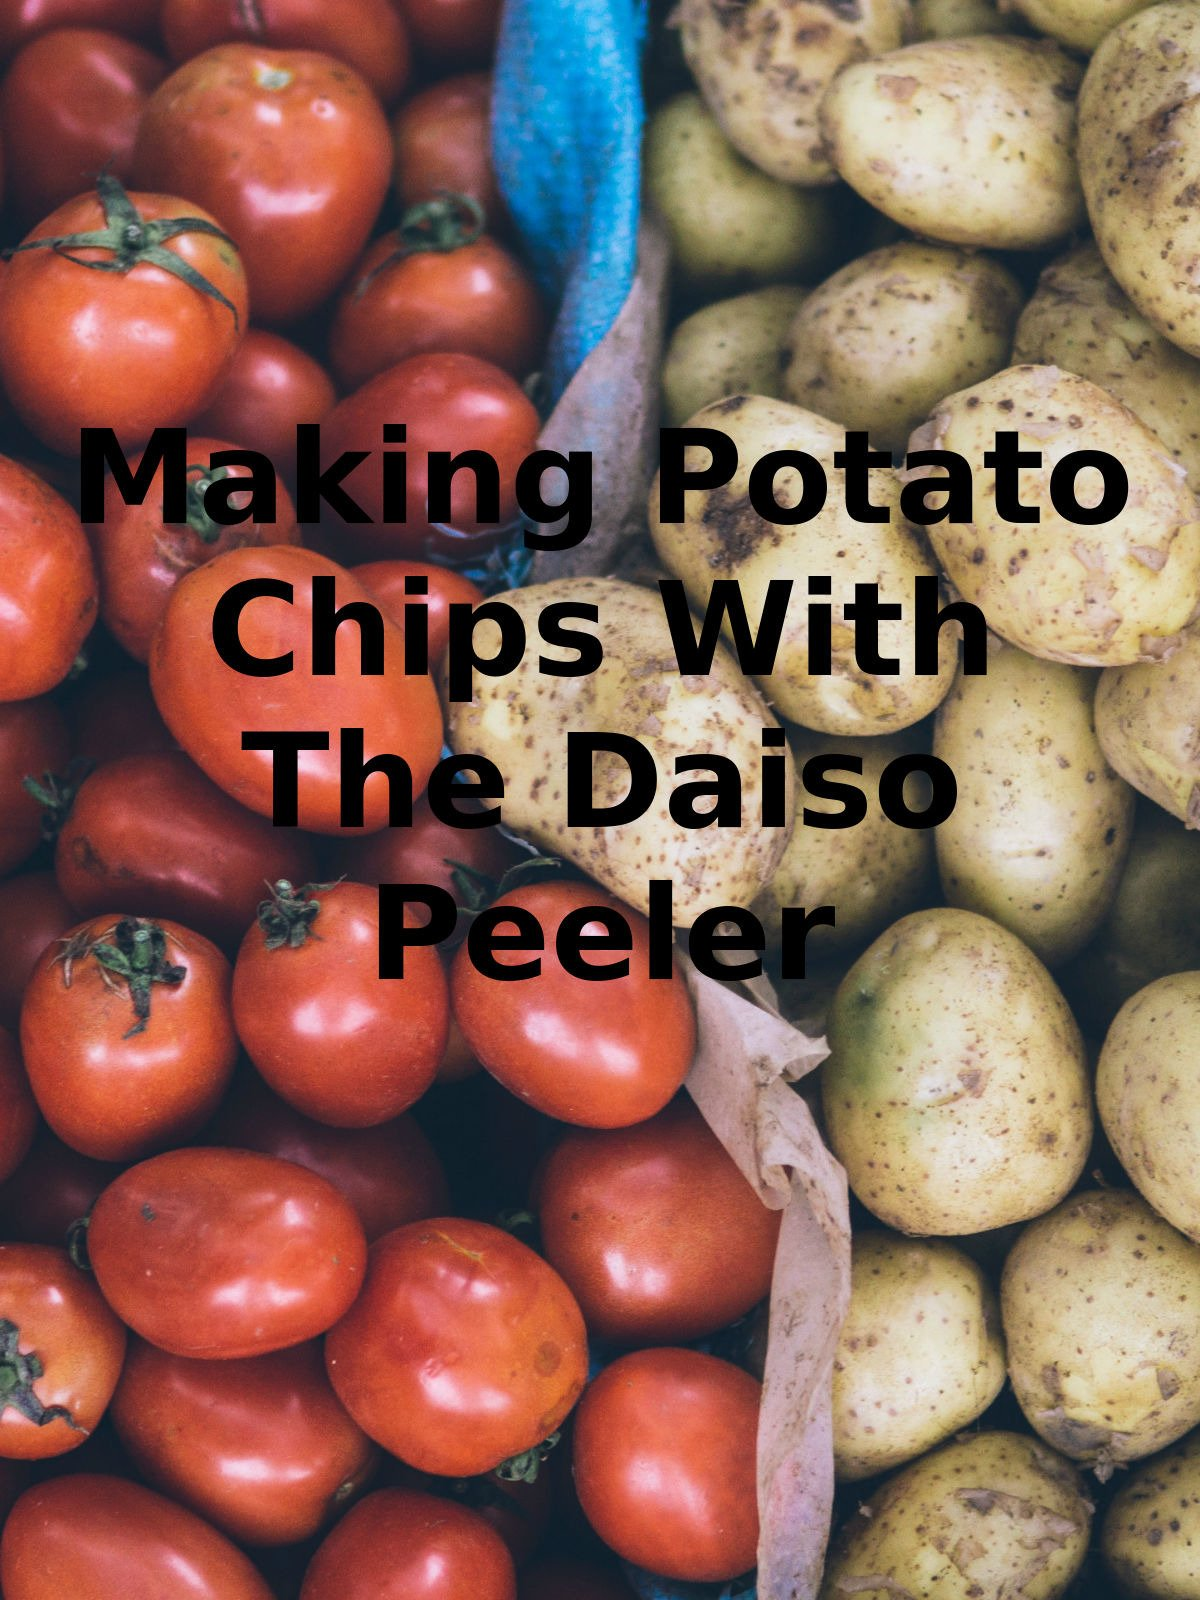 Review: Making Potato Chips With The Daiso Peeler